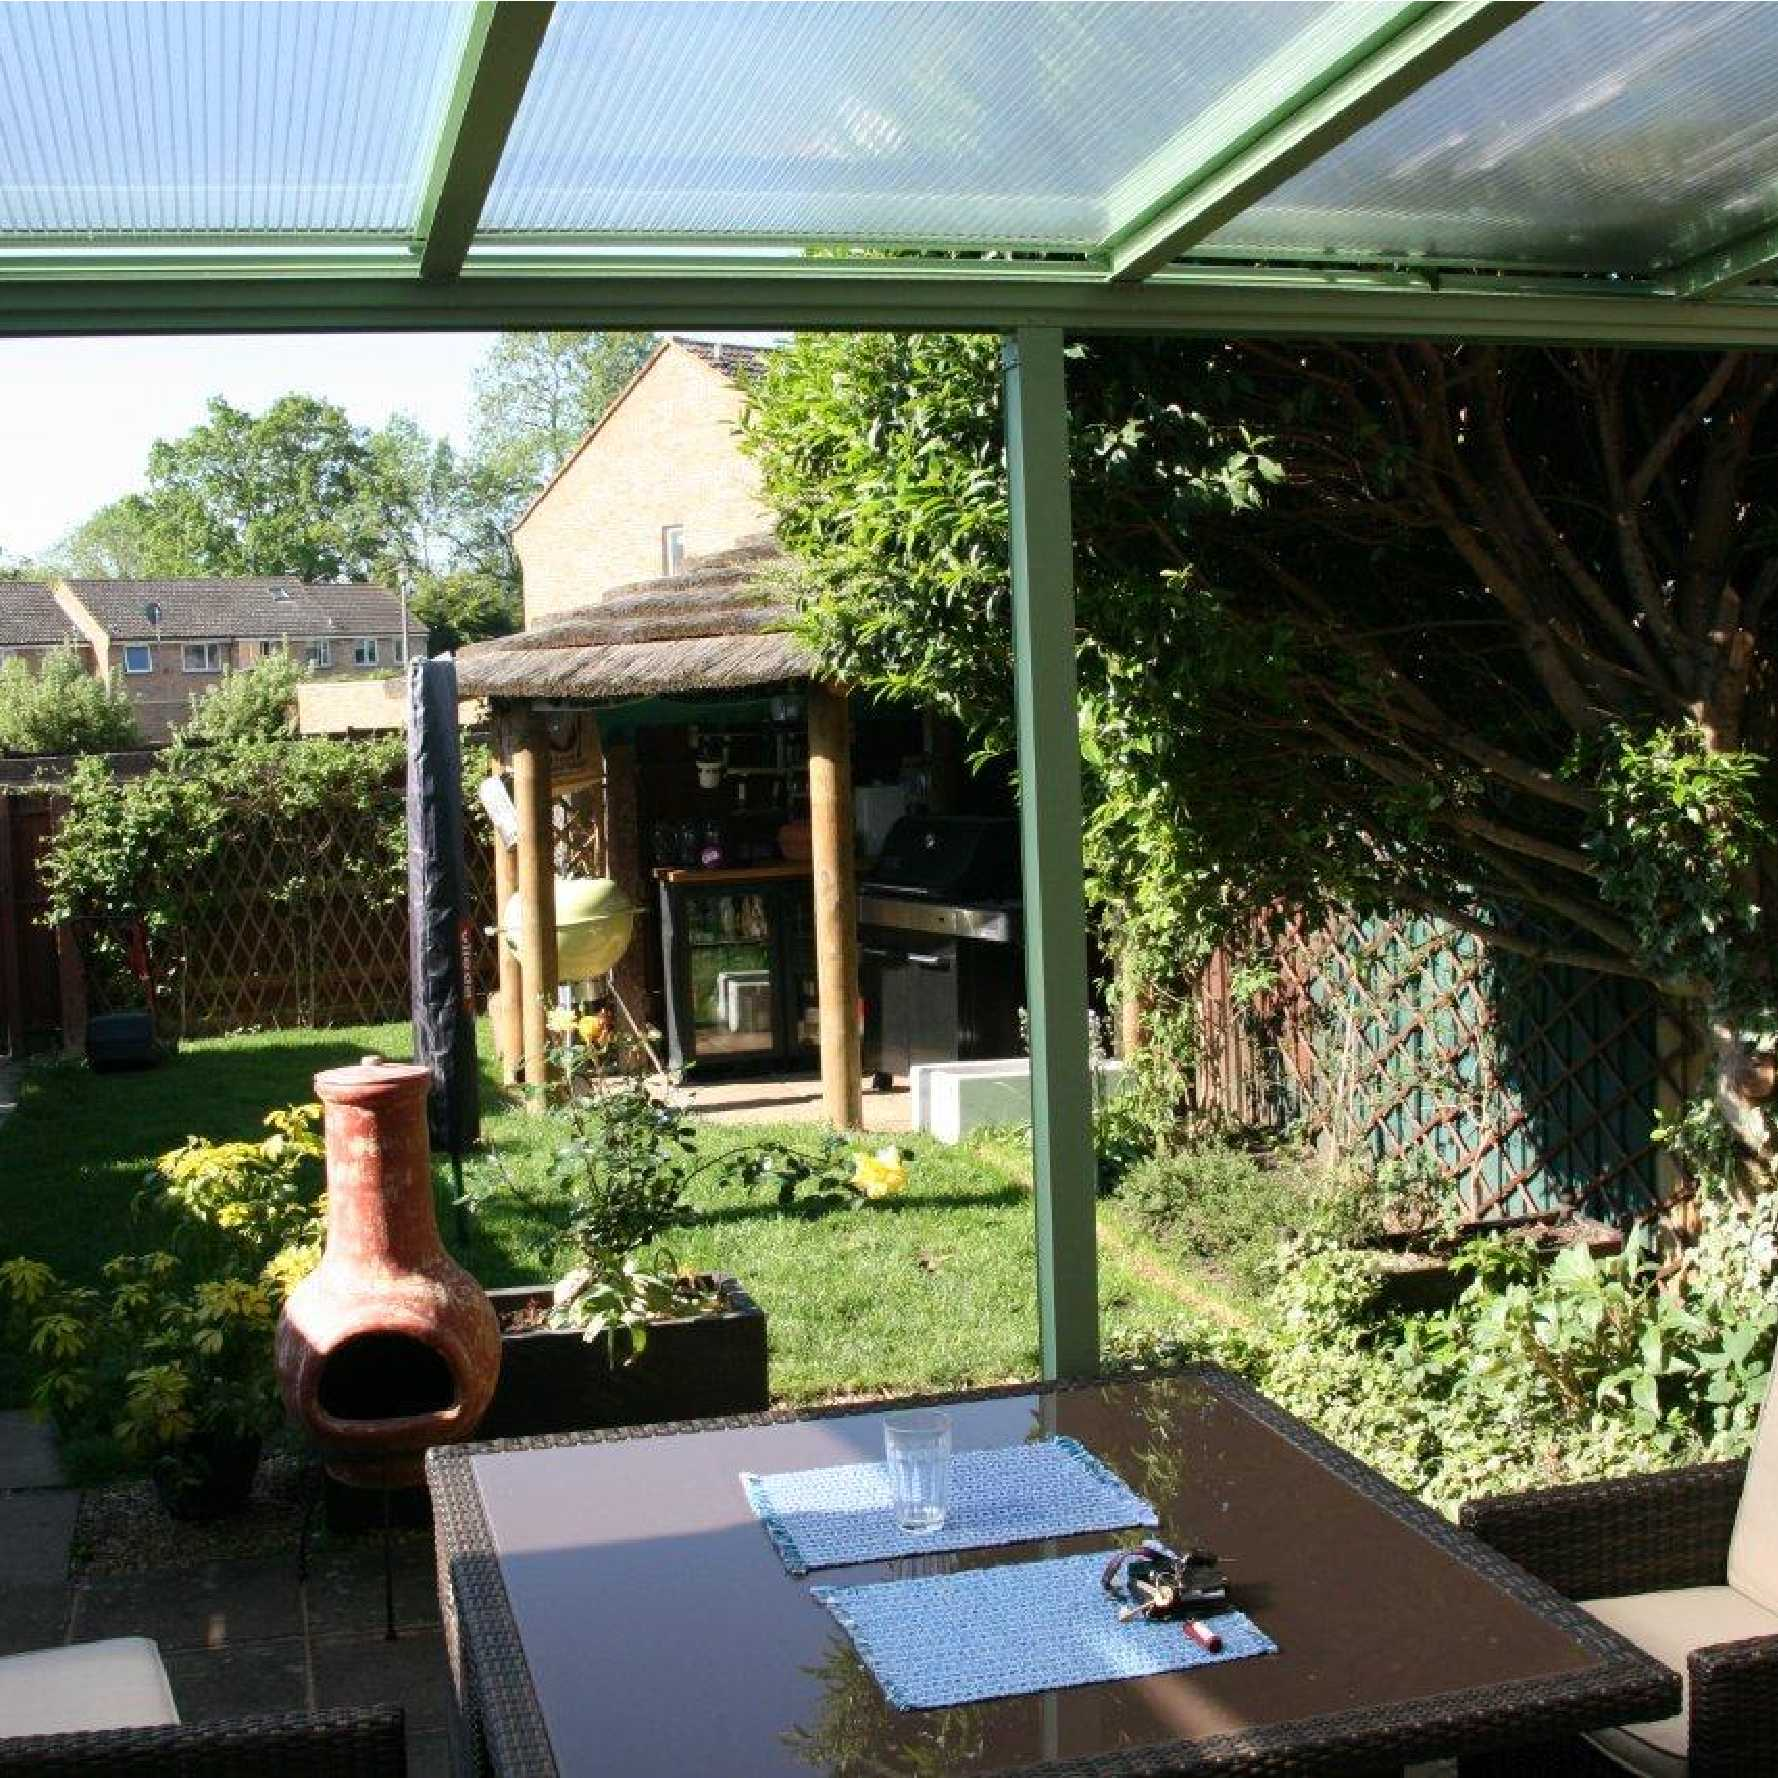 Affordable Omega Smart White Lean-To Canopy with 16mm Polycarbonate Glazing - 6.3m (W) x 2.5m (P), (4) Supporting Posts